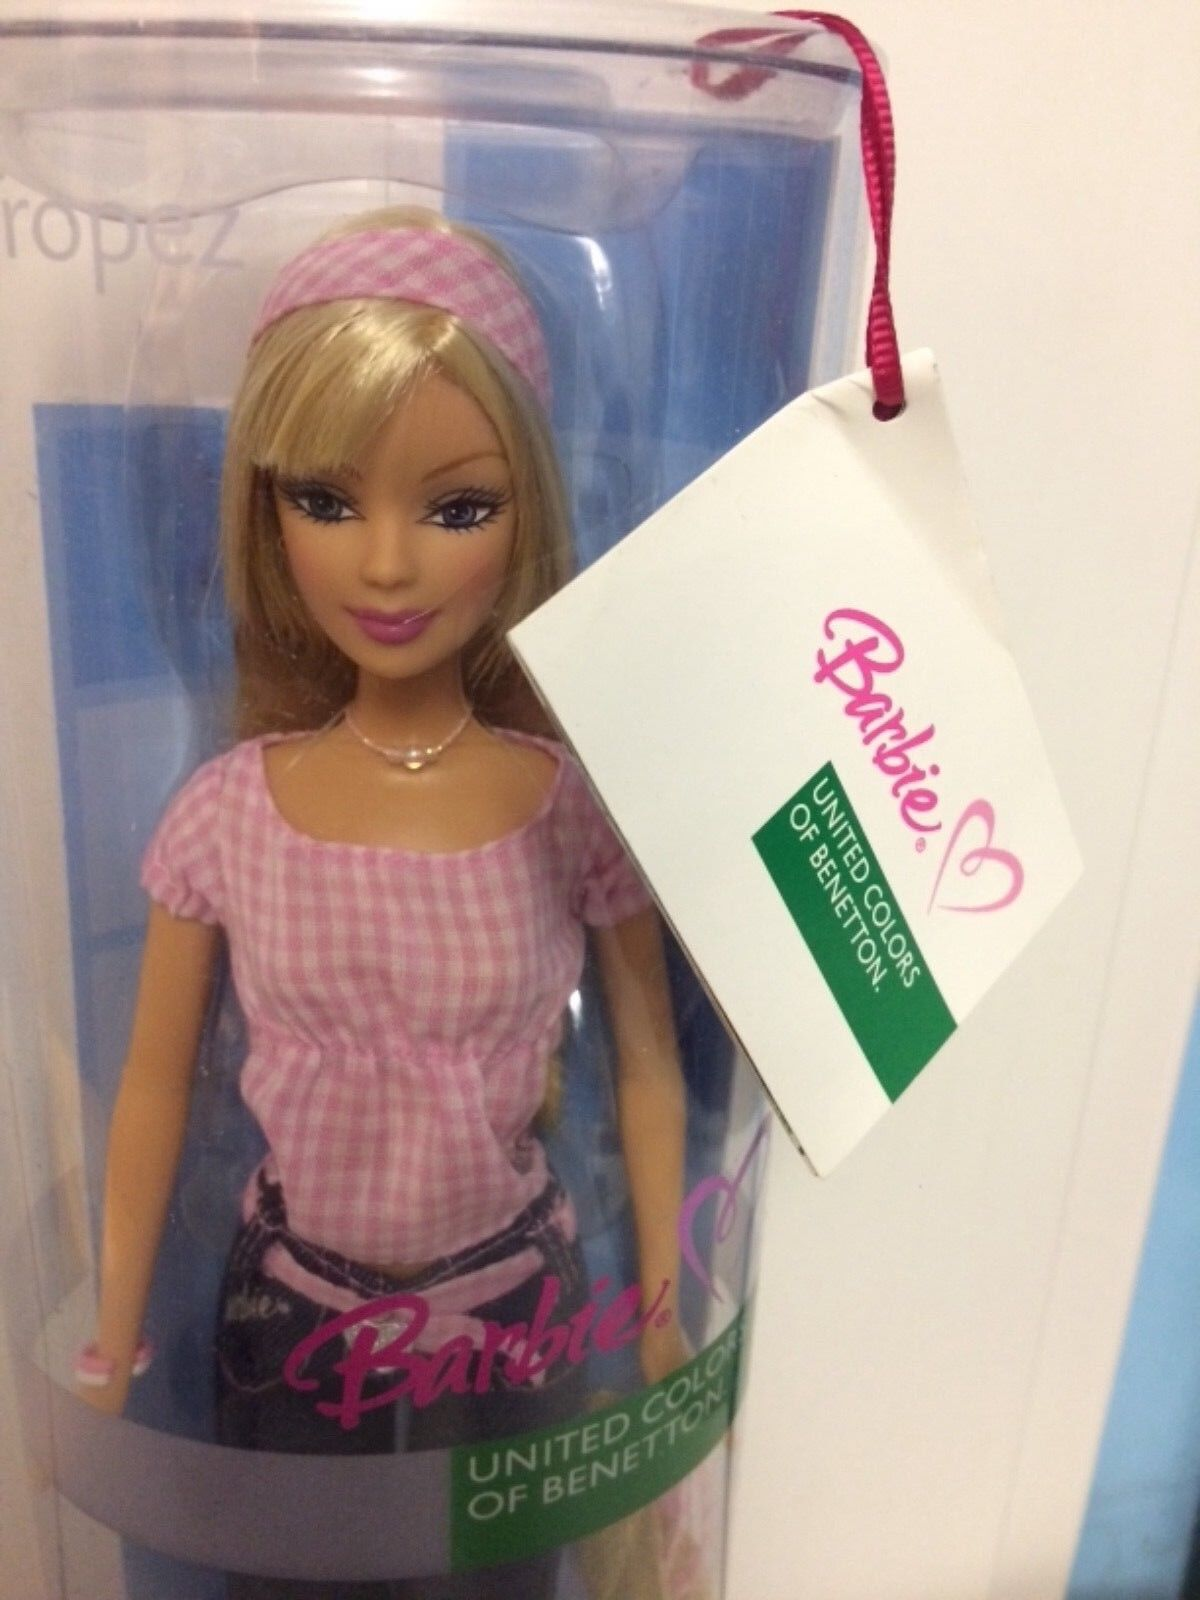 FASHION FEVER, BENETTON esclusivo, St Tropez Barbie Doll